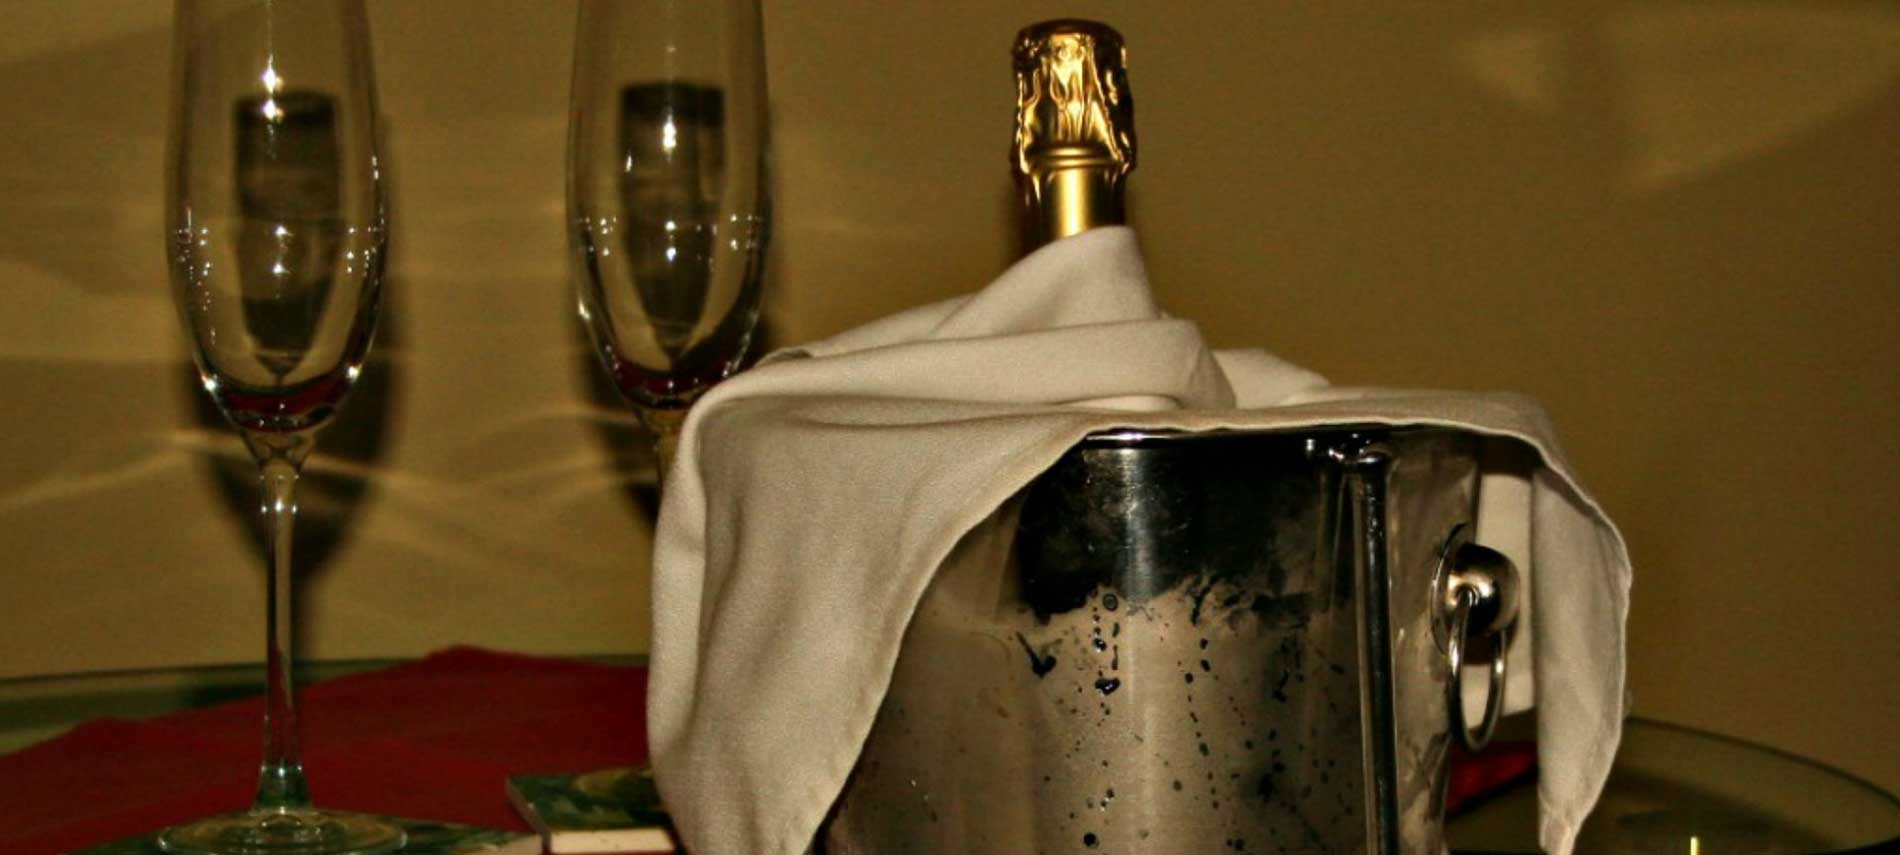 A Chiller Bucket filled with a Champagne bottle and two glasses setting on a table